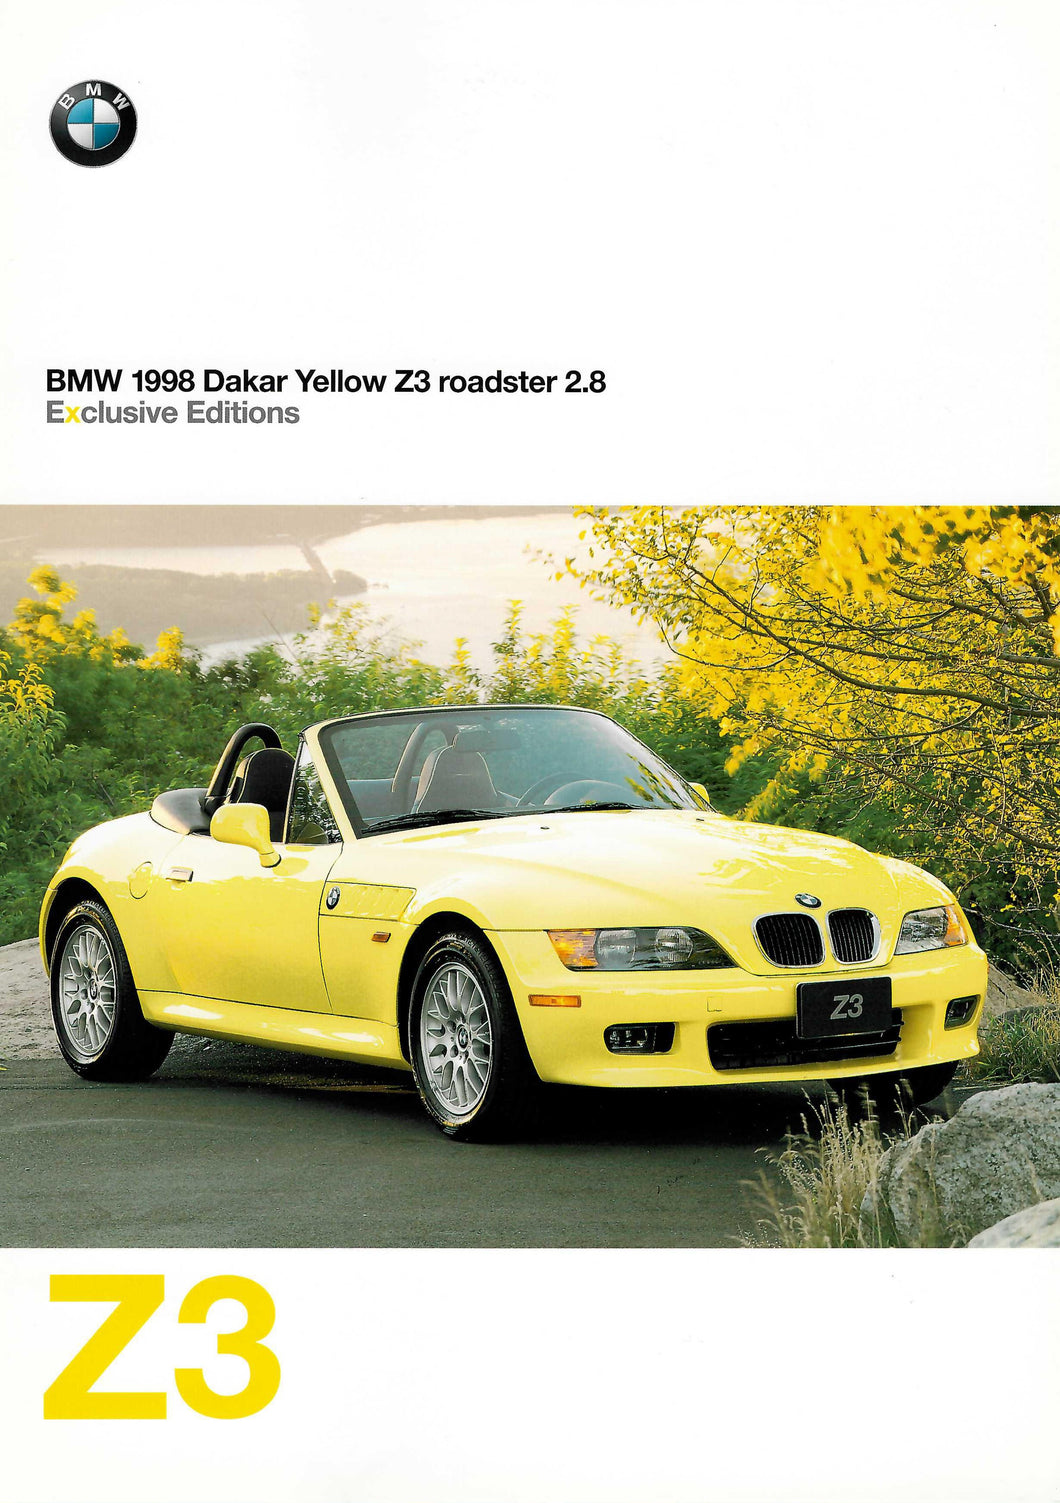 Brochure - BMW 1998 Dakar Yellow Z3 roadster 2.8 (E36/7)